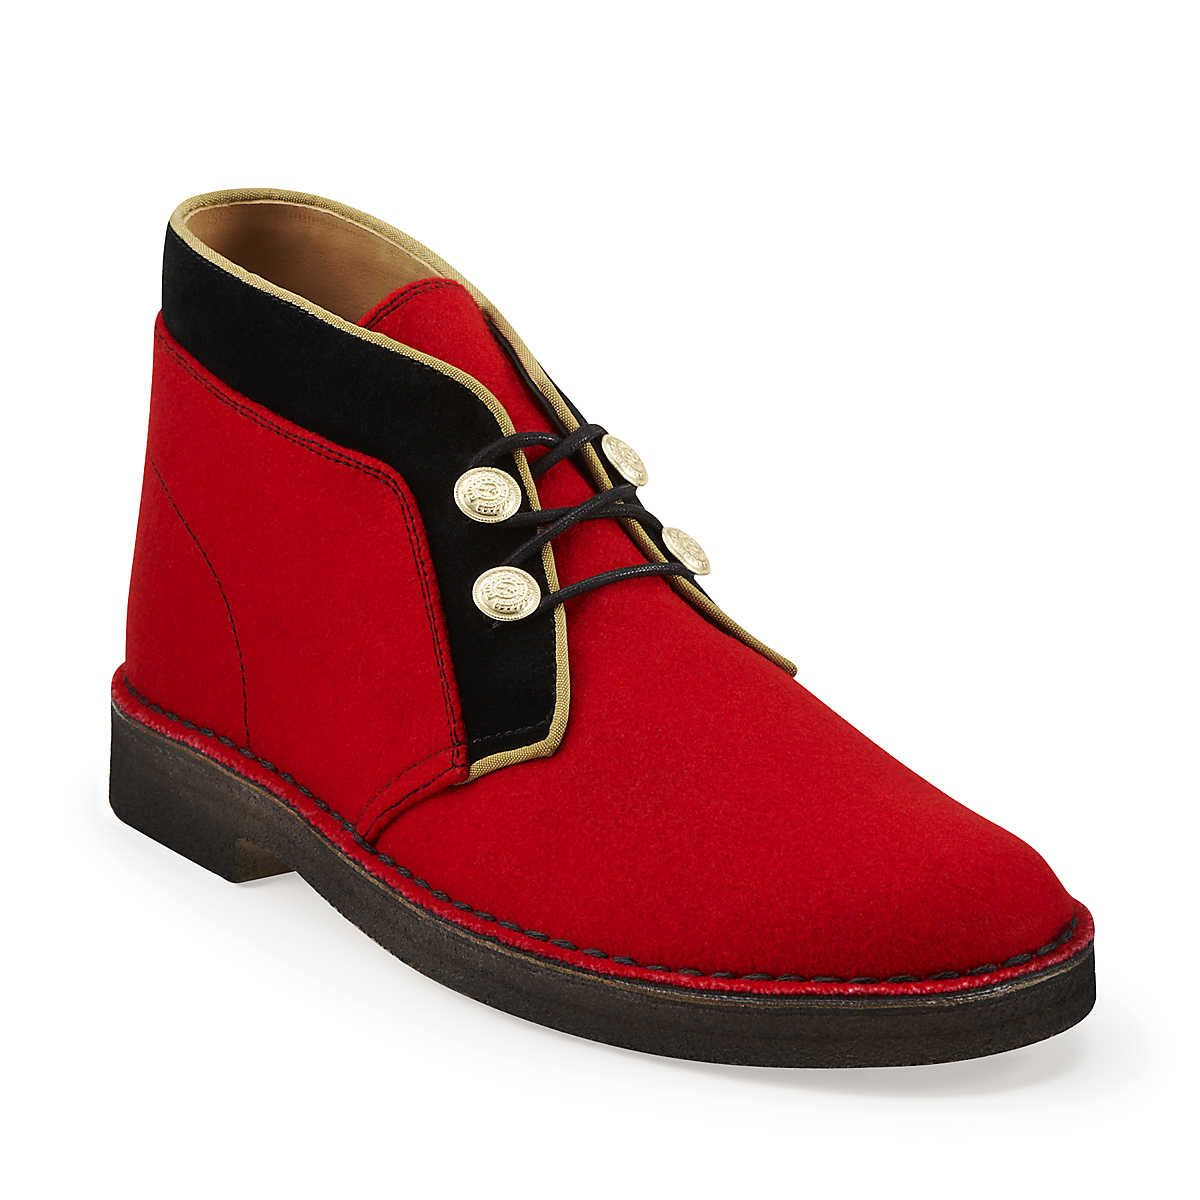 5a6f1e818e1bd5 Desert Boot-Men in Hainsworth Synthetic - Mens Boots from Clarks ...